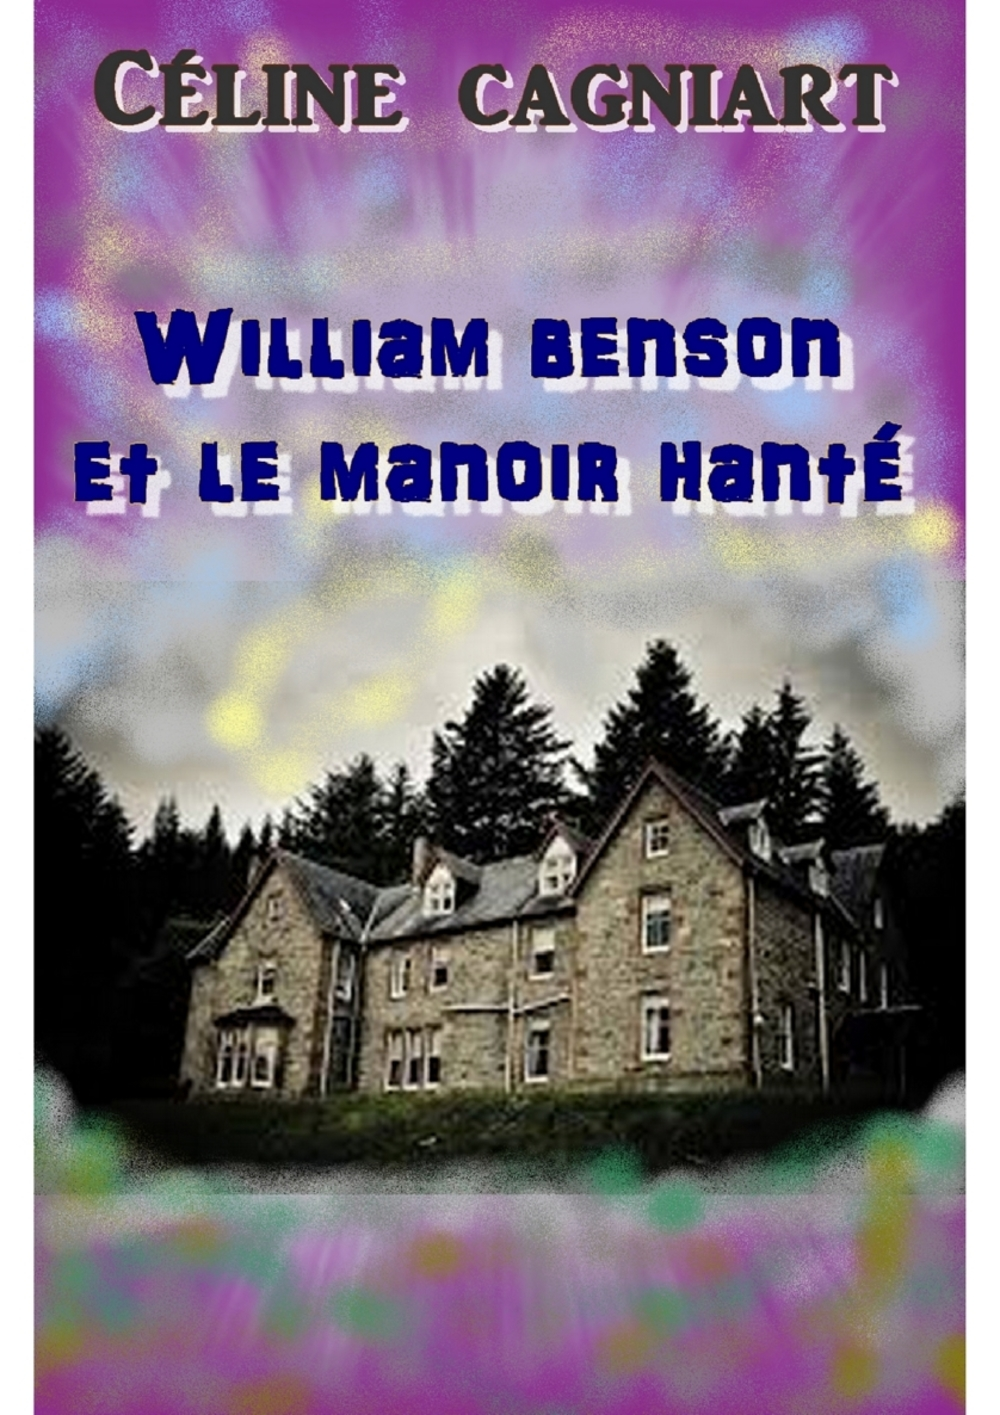 William Benson et le manoir hanté